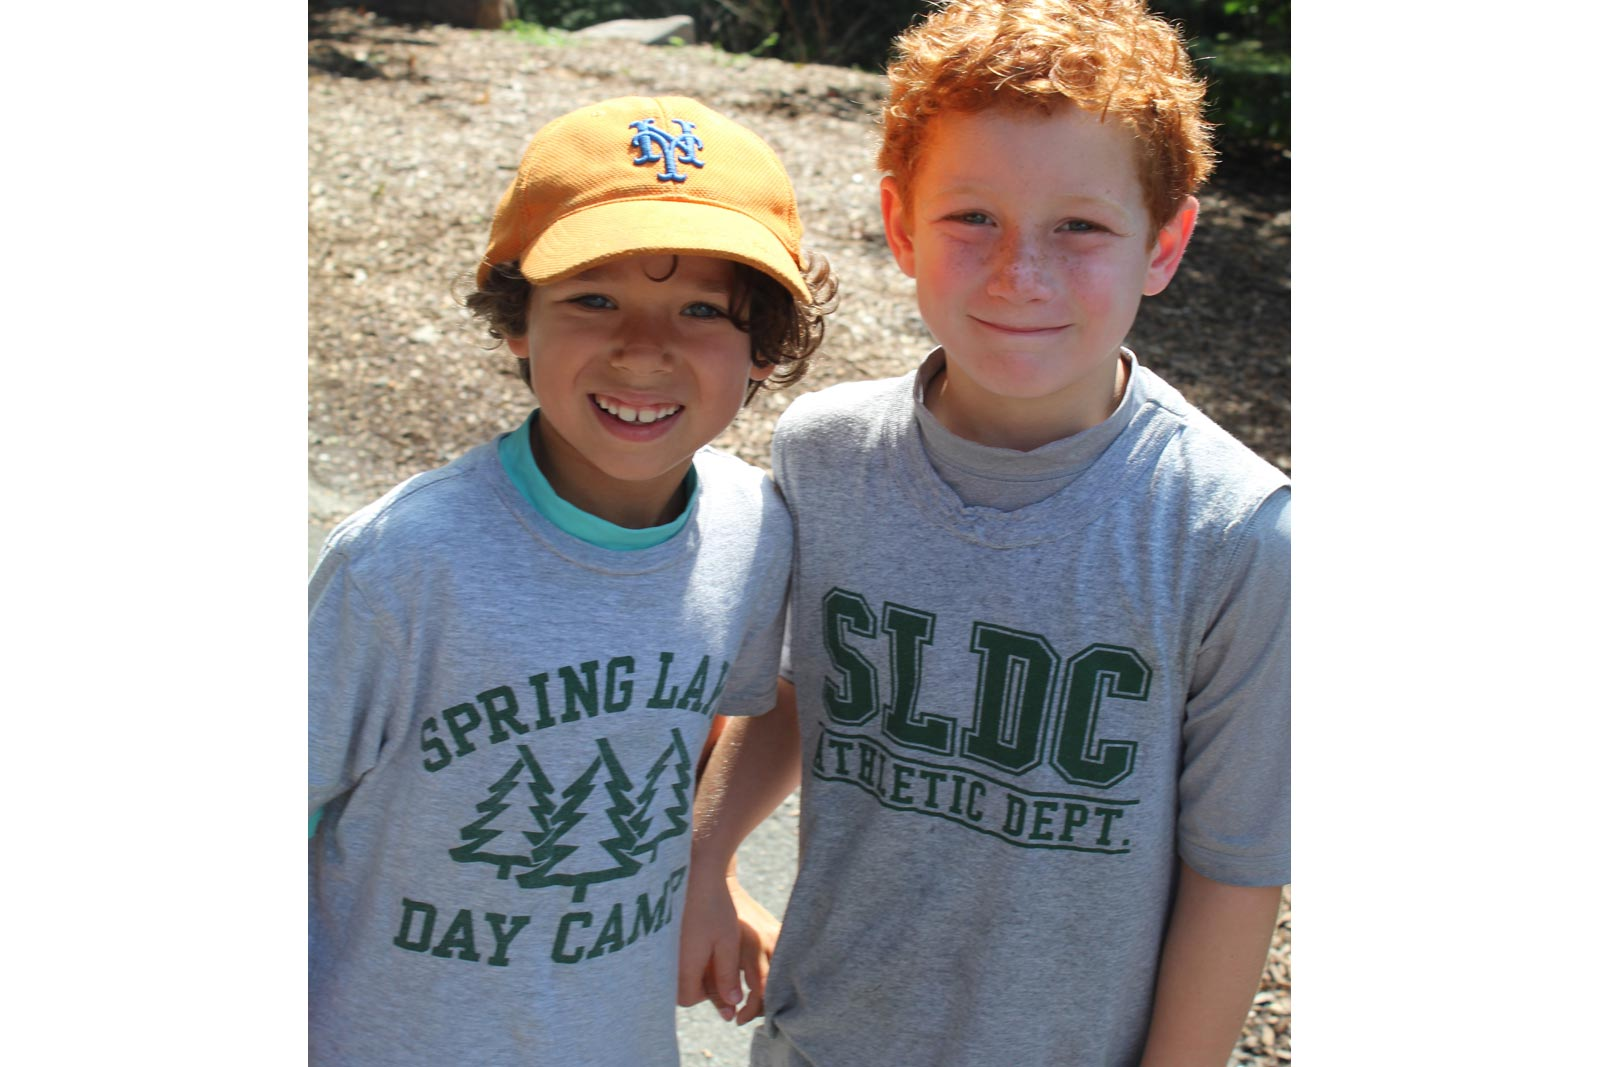 Spring Lake Summer Day Camp Bergen County, NJ